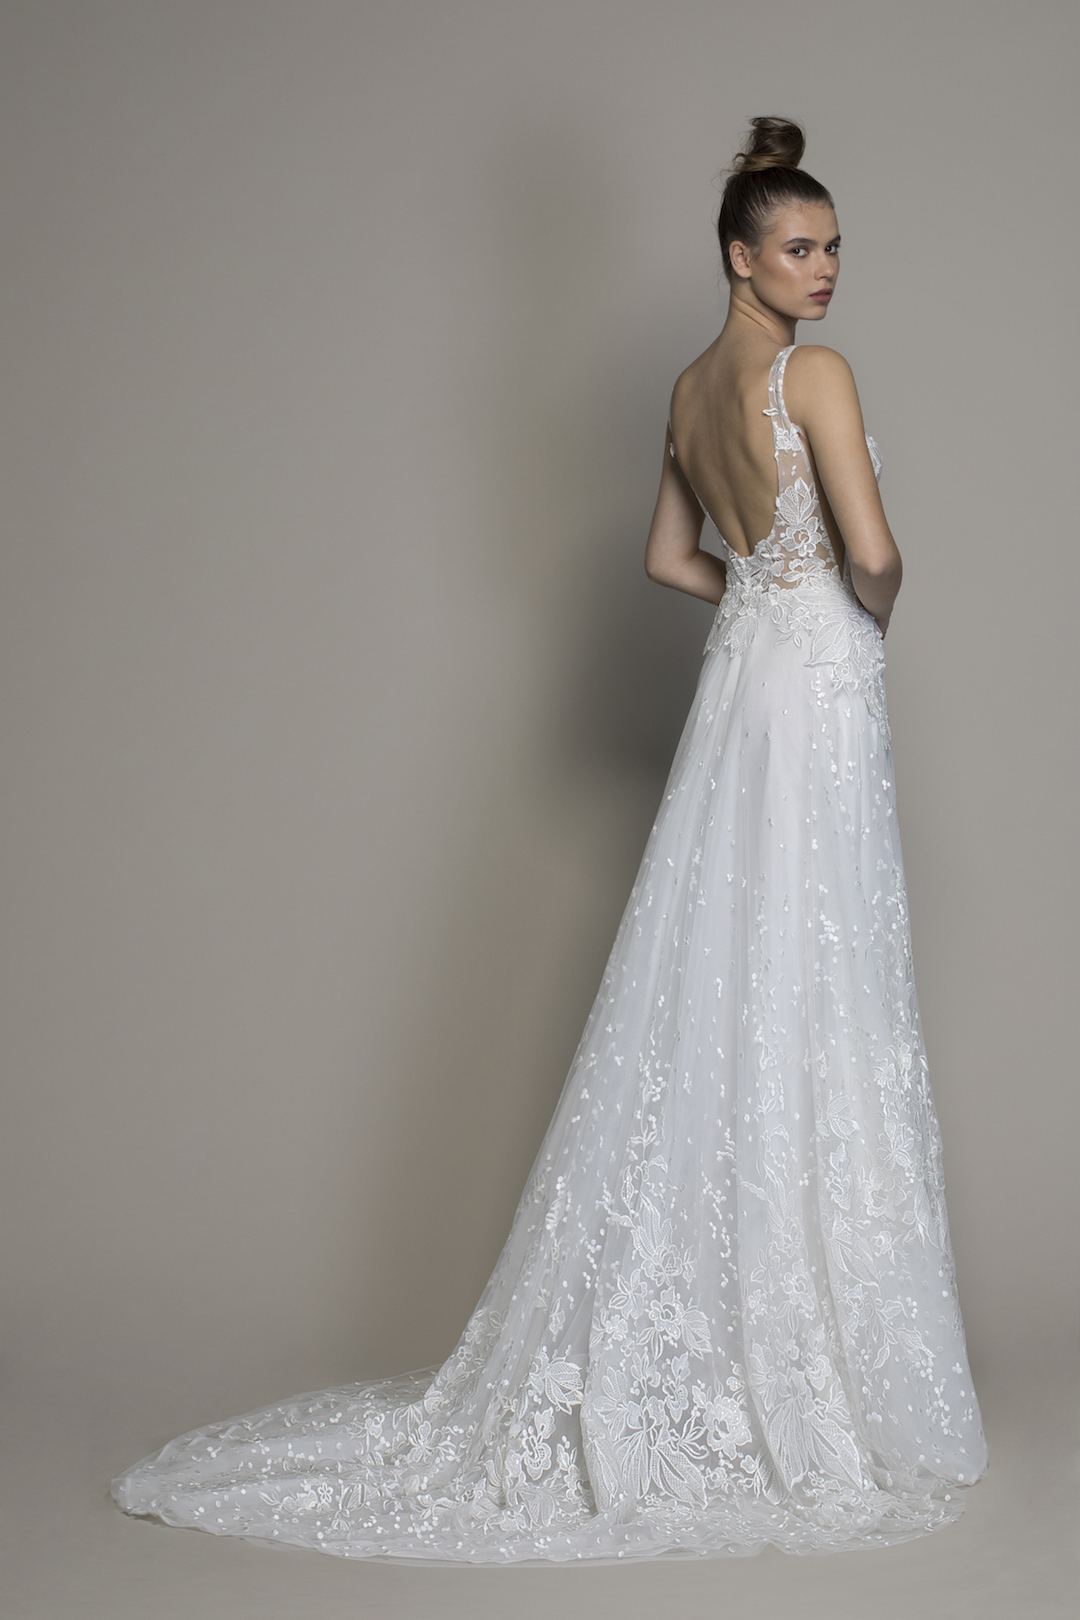 Pnina Tornai's new LOVE 2020 Collection is out! This is style 14767